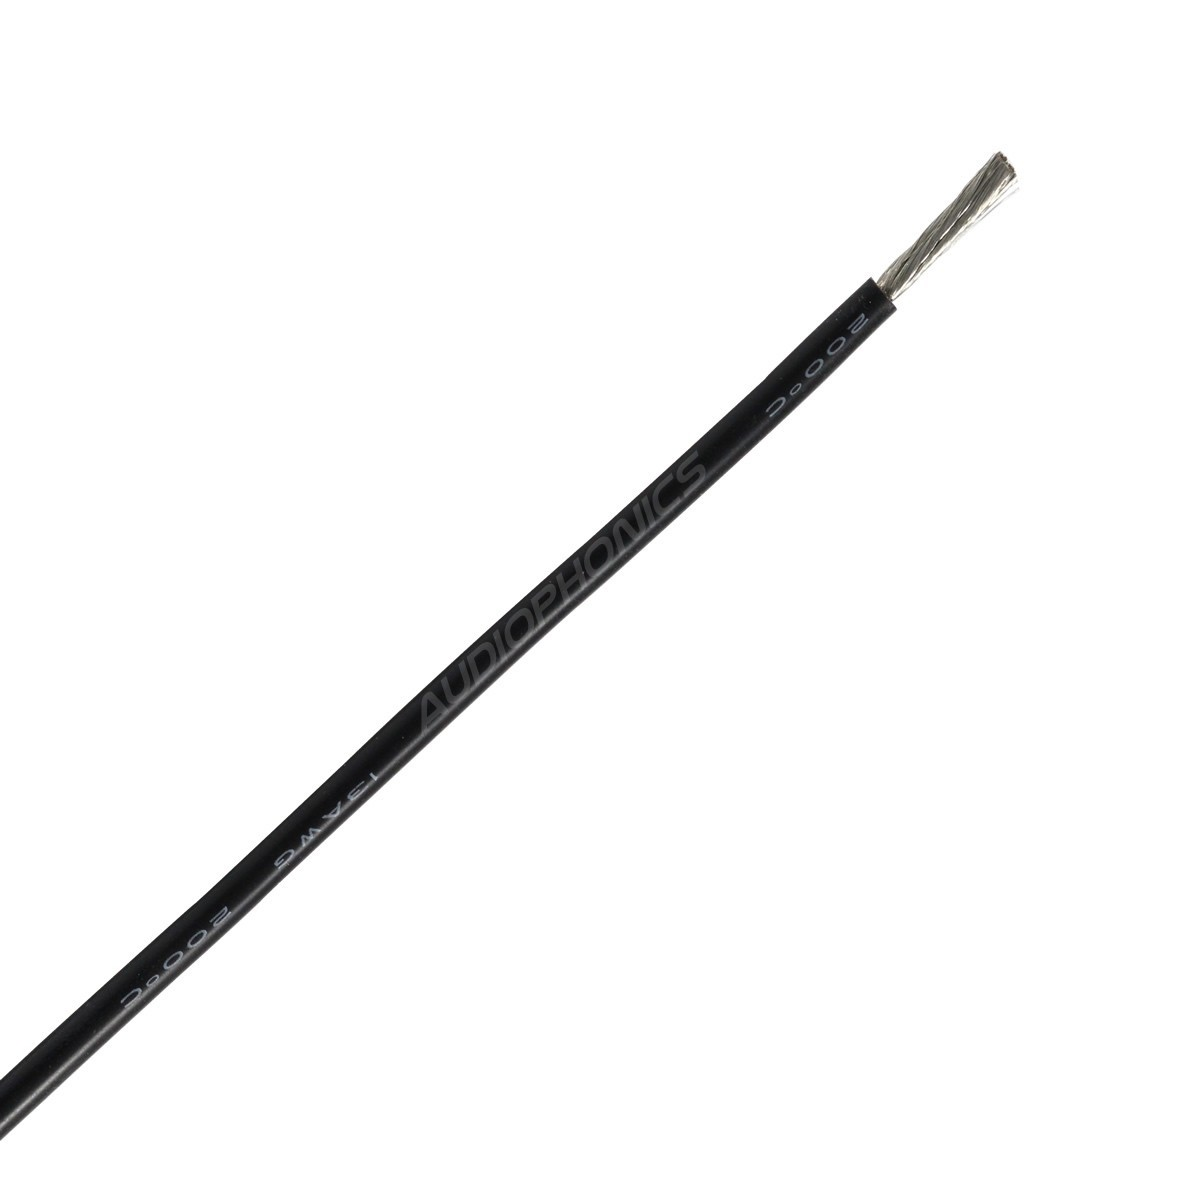 Mono-conductor silicon cable 1.27 mm² (Black)